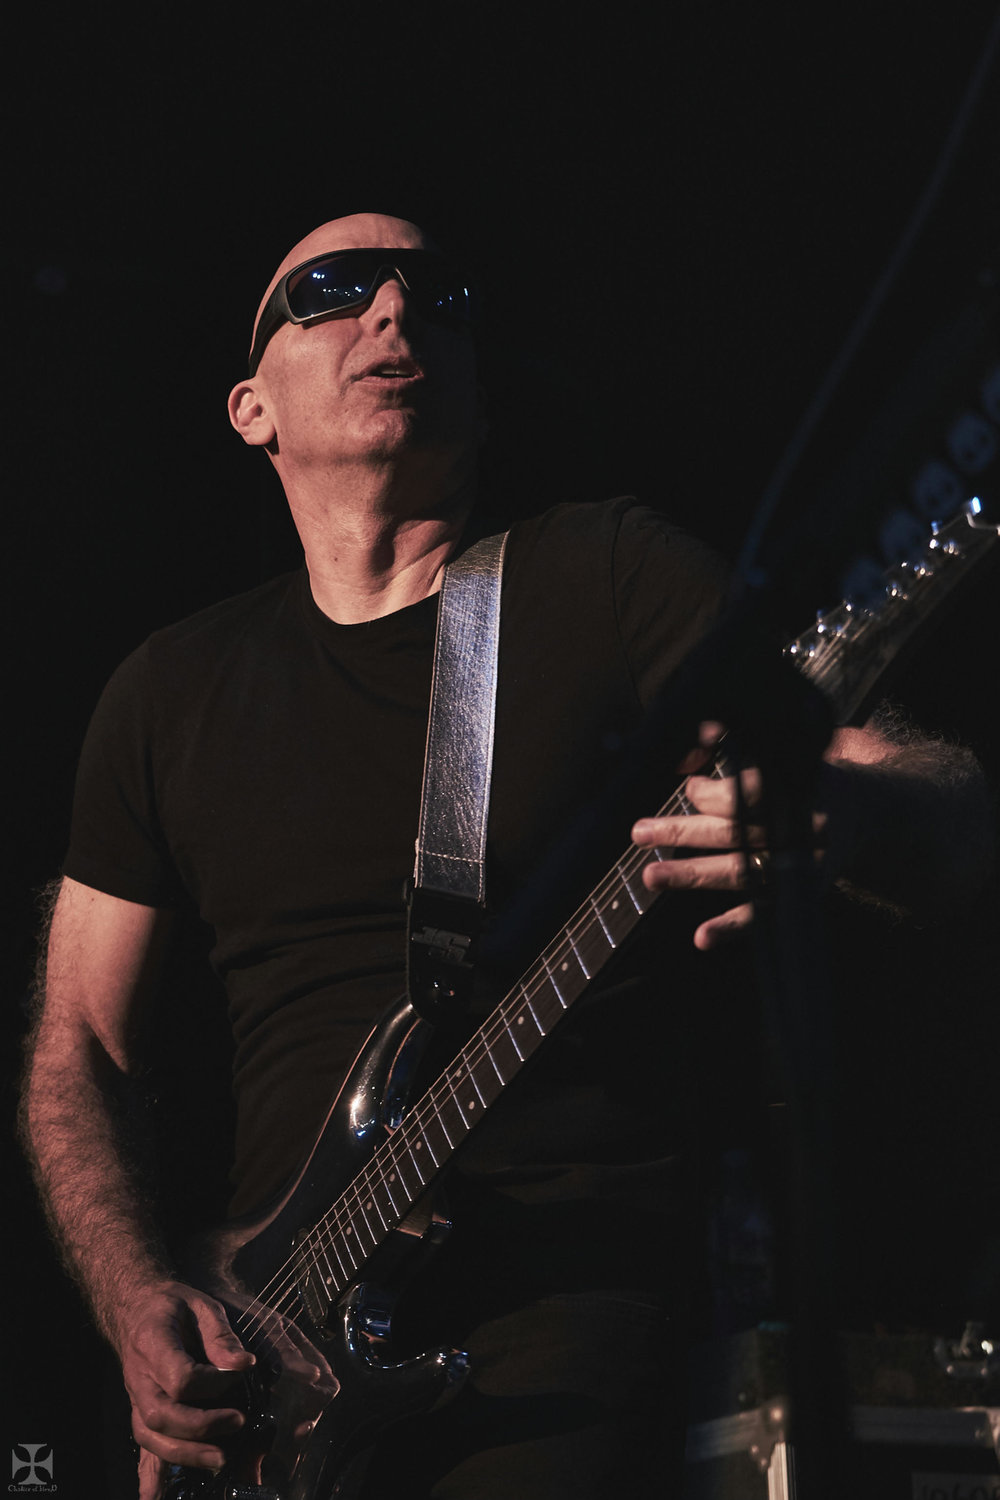 2018.12.04 Joe Satriani - DSCF6863_branded.jpg